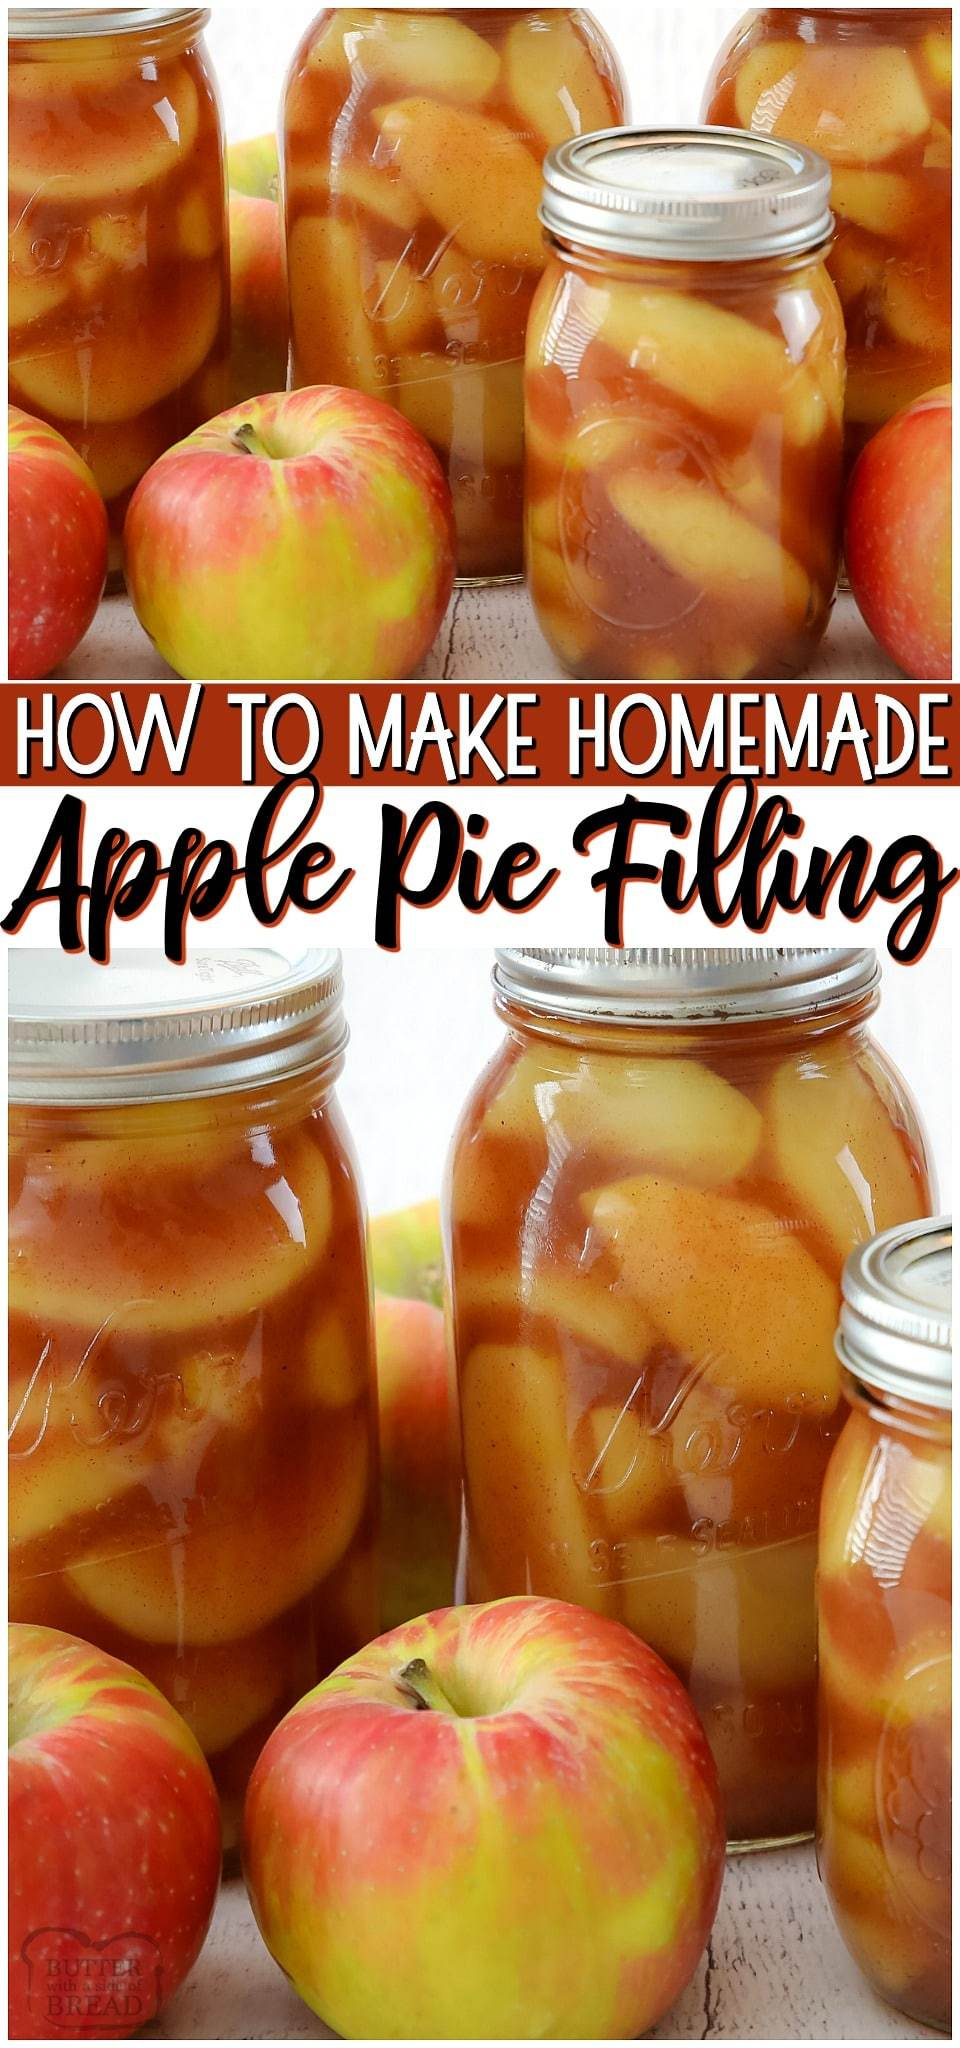 Learn how to make apple pie filling with this simple method & recipe! This is a low sugar apple pie filling so that the flavor of the apples really shine. Apple Pie Filling can be used in so many desserts and is a great way to use fresh apples when they're in season. #apples #applepie #applepiefilling #homemade #easyrecipe from BUTTER WITH A SIDE OF BREAD